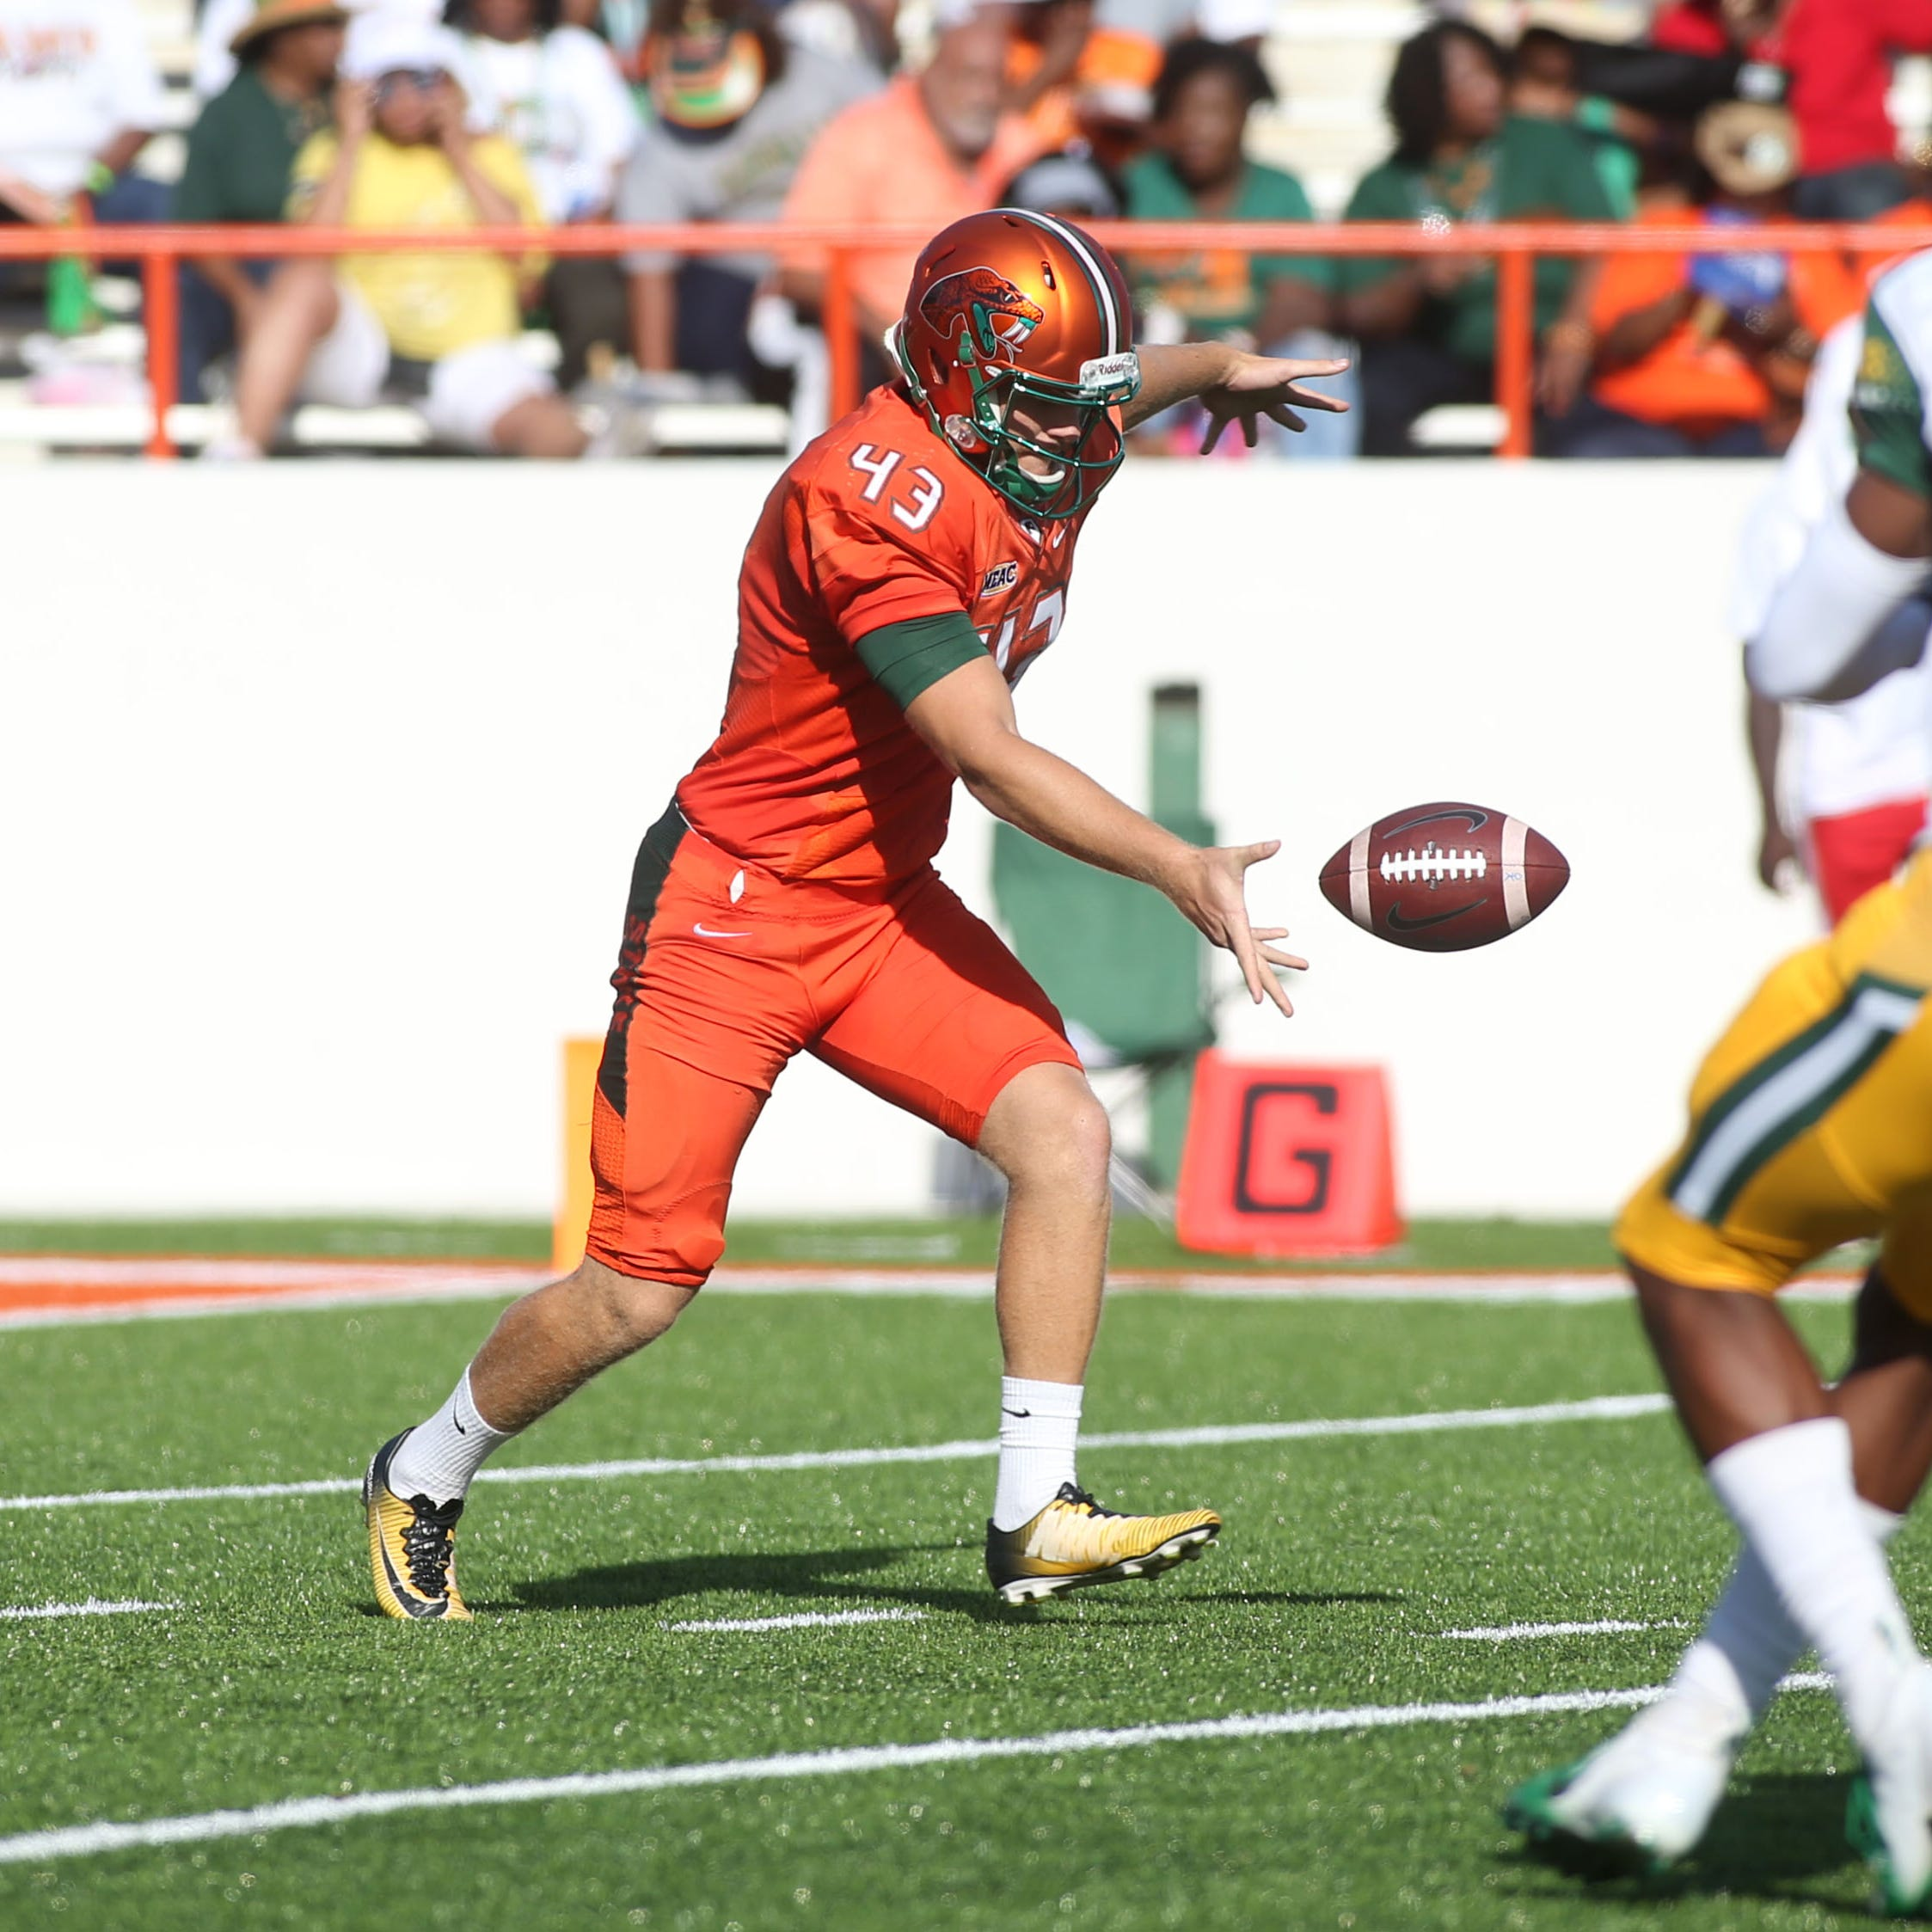 FAMU punter Chris Faddoul named AP All-American